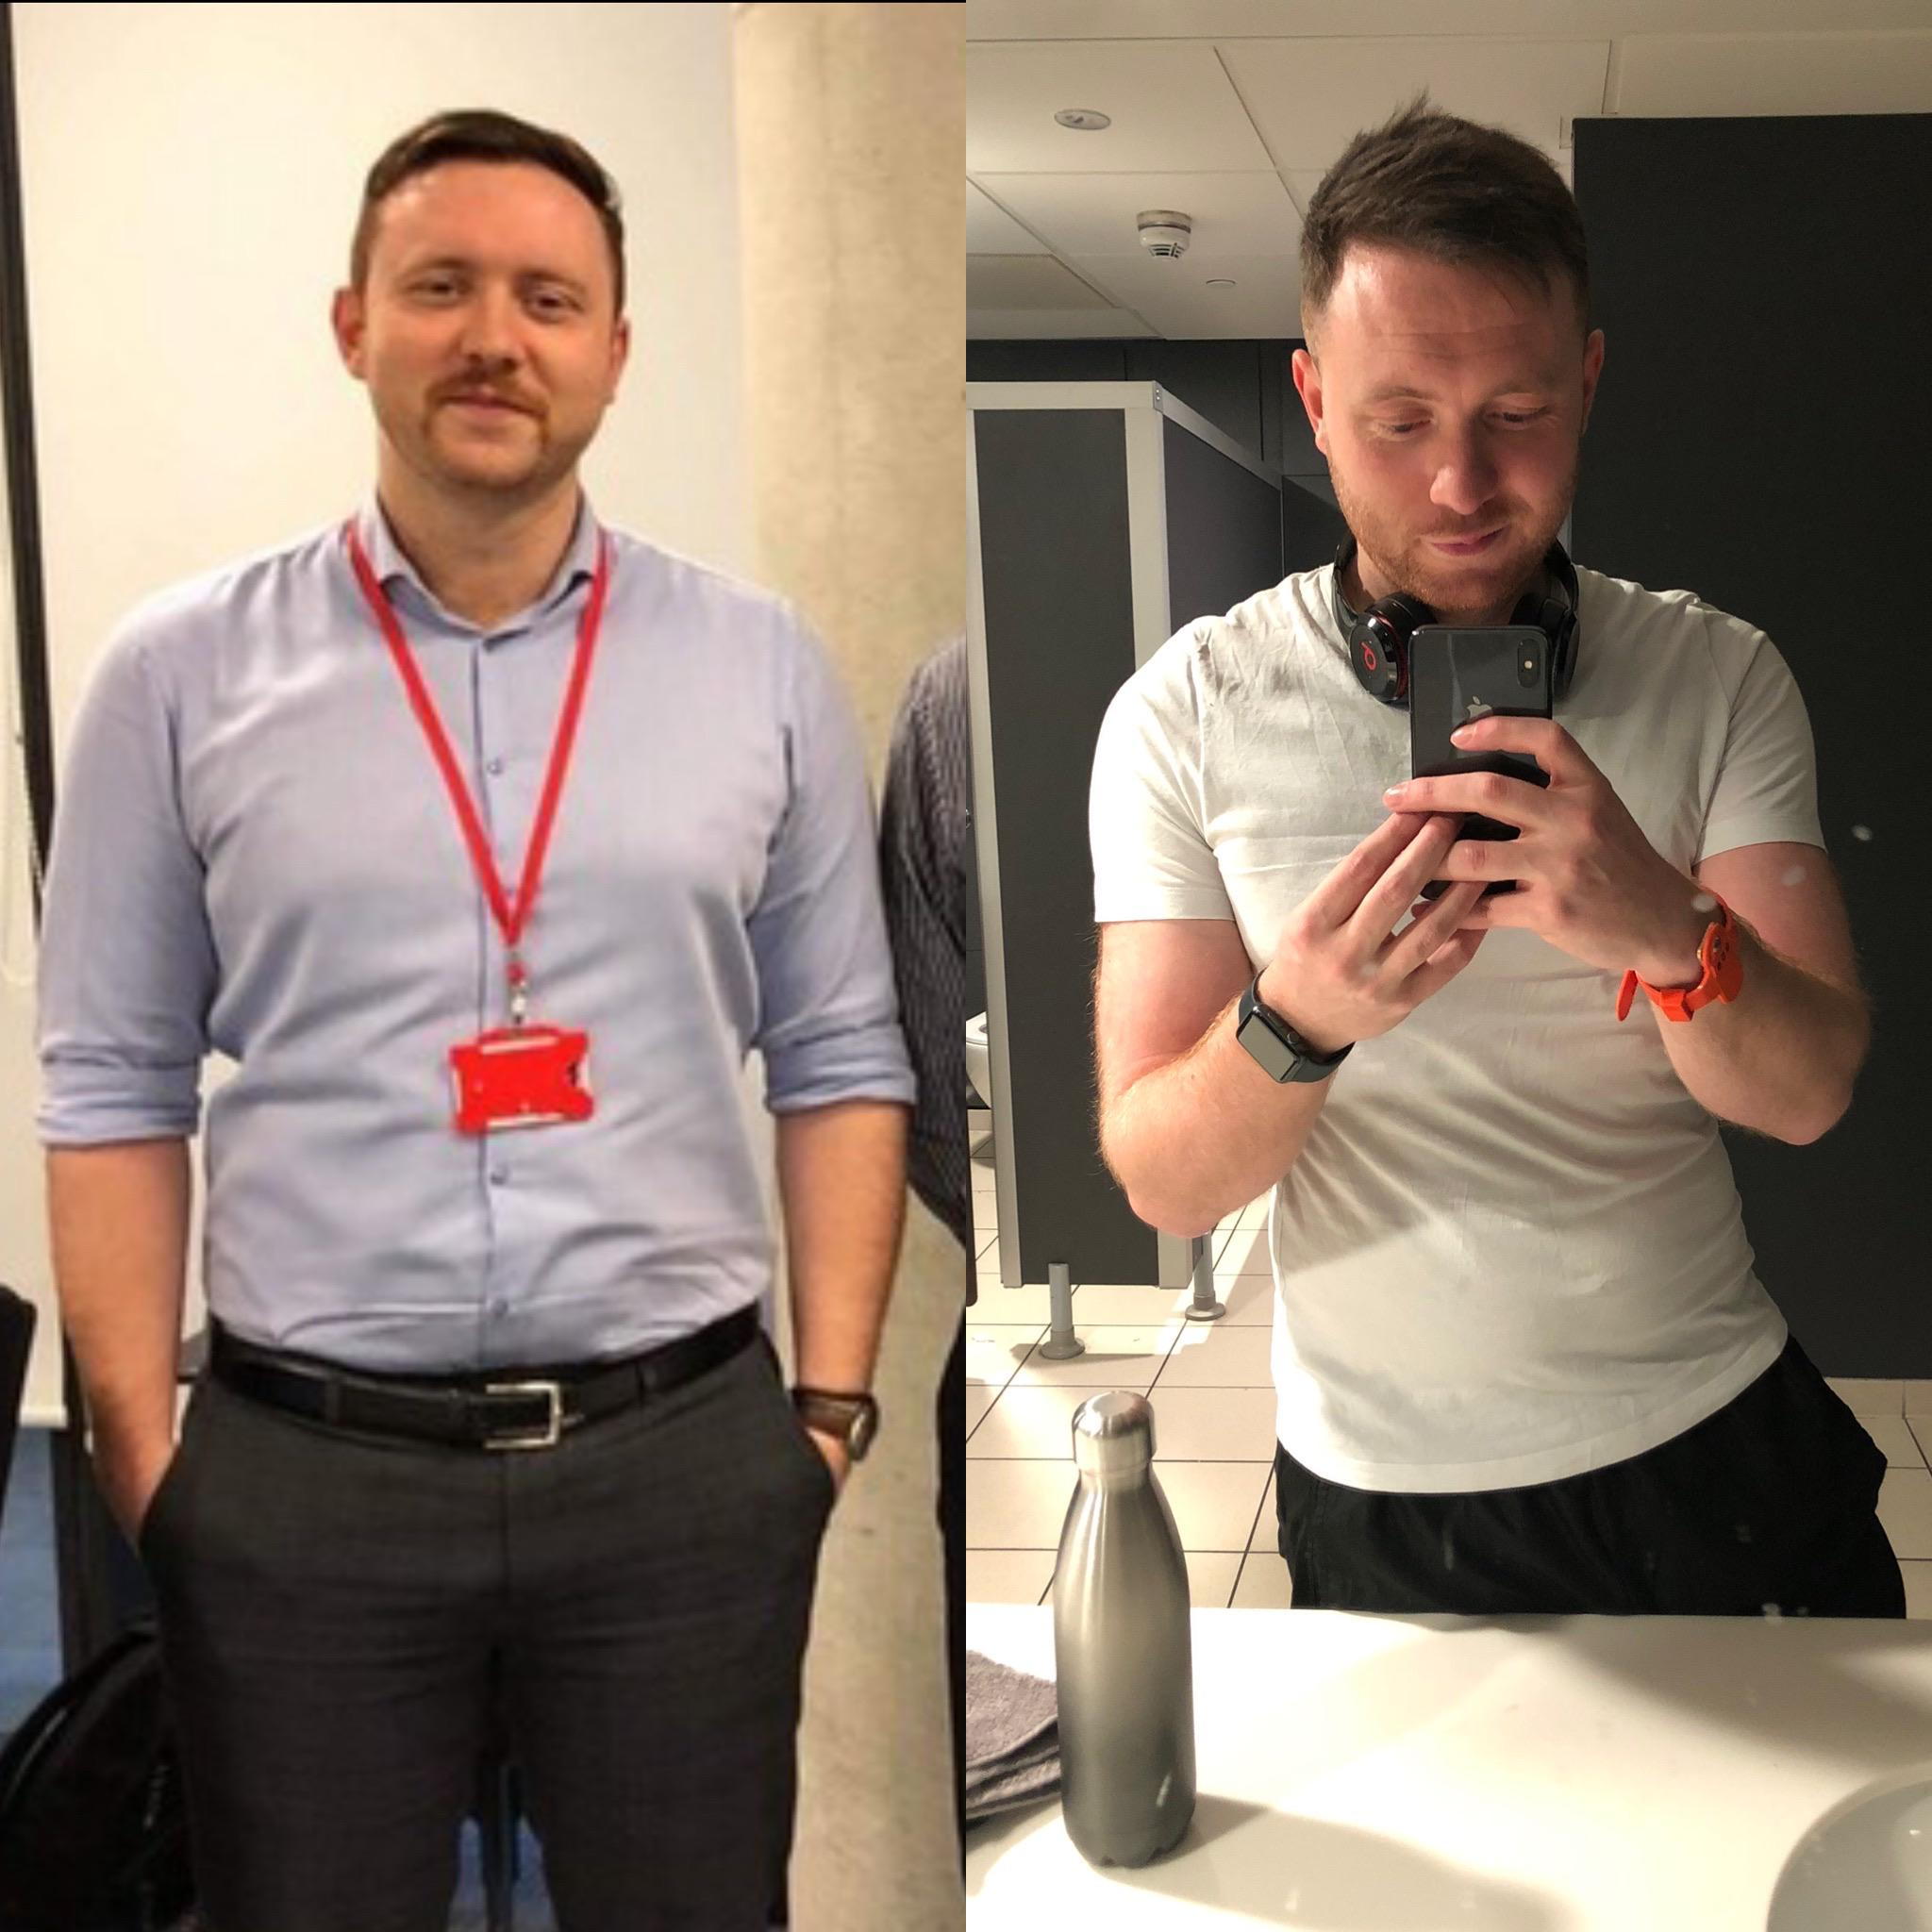 [Image] | On 1st December I weighed 15st 4, the heaviest I've ever been. About 2 months later, through hitting the gym and cleaner eating, I'm down to 13st 8.